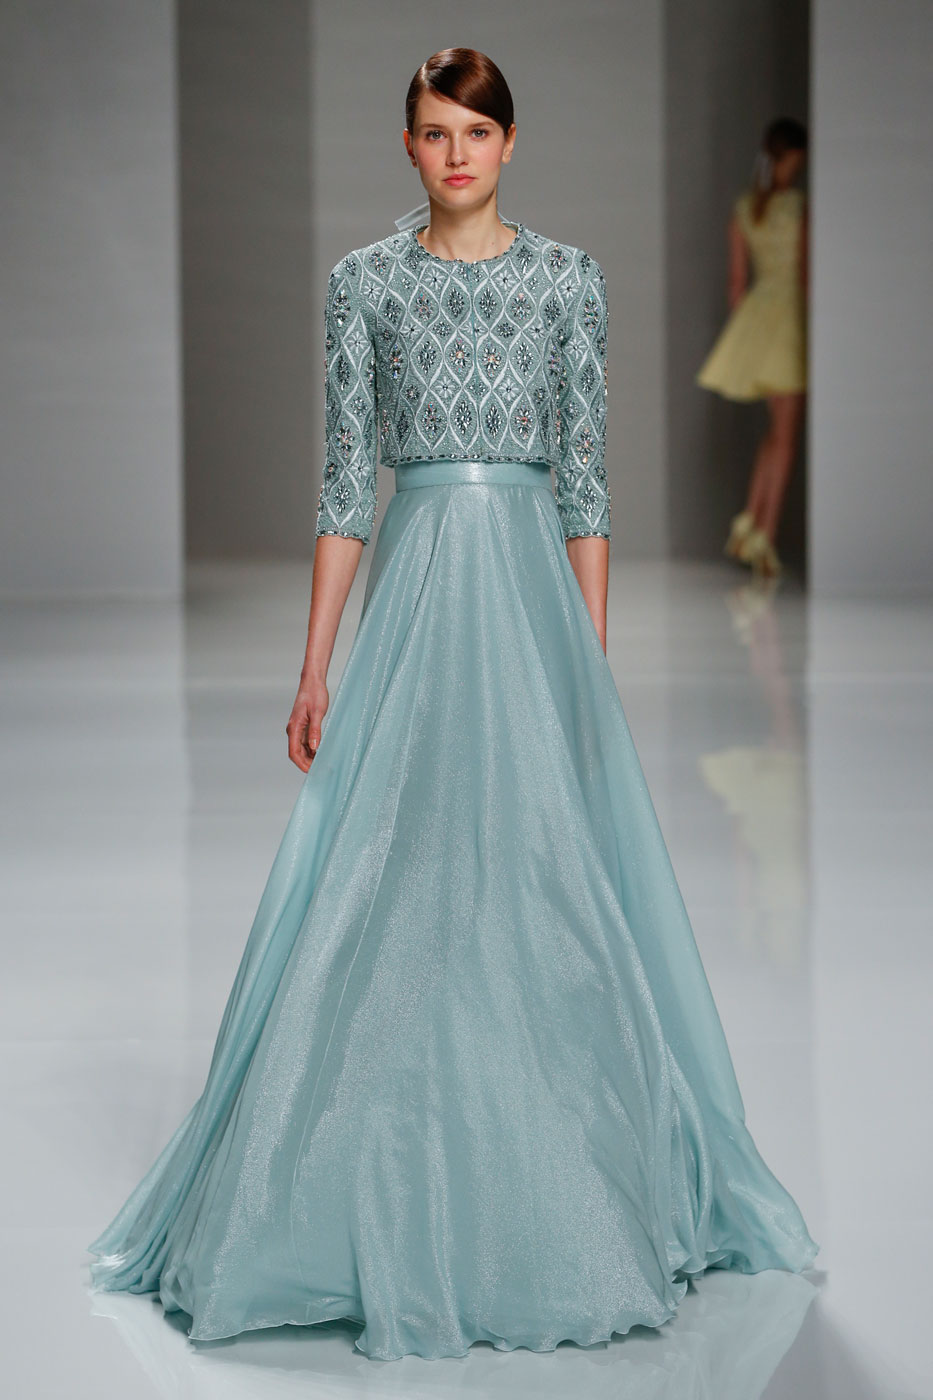 Georges-Hobeika-fashion-runway-show-haute-couture-paris-spring-2015-the-impression-19